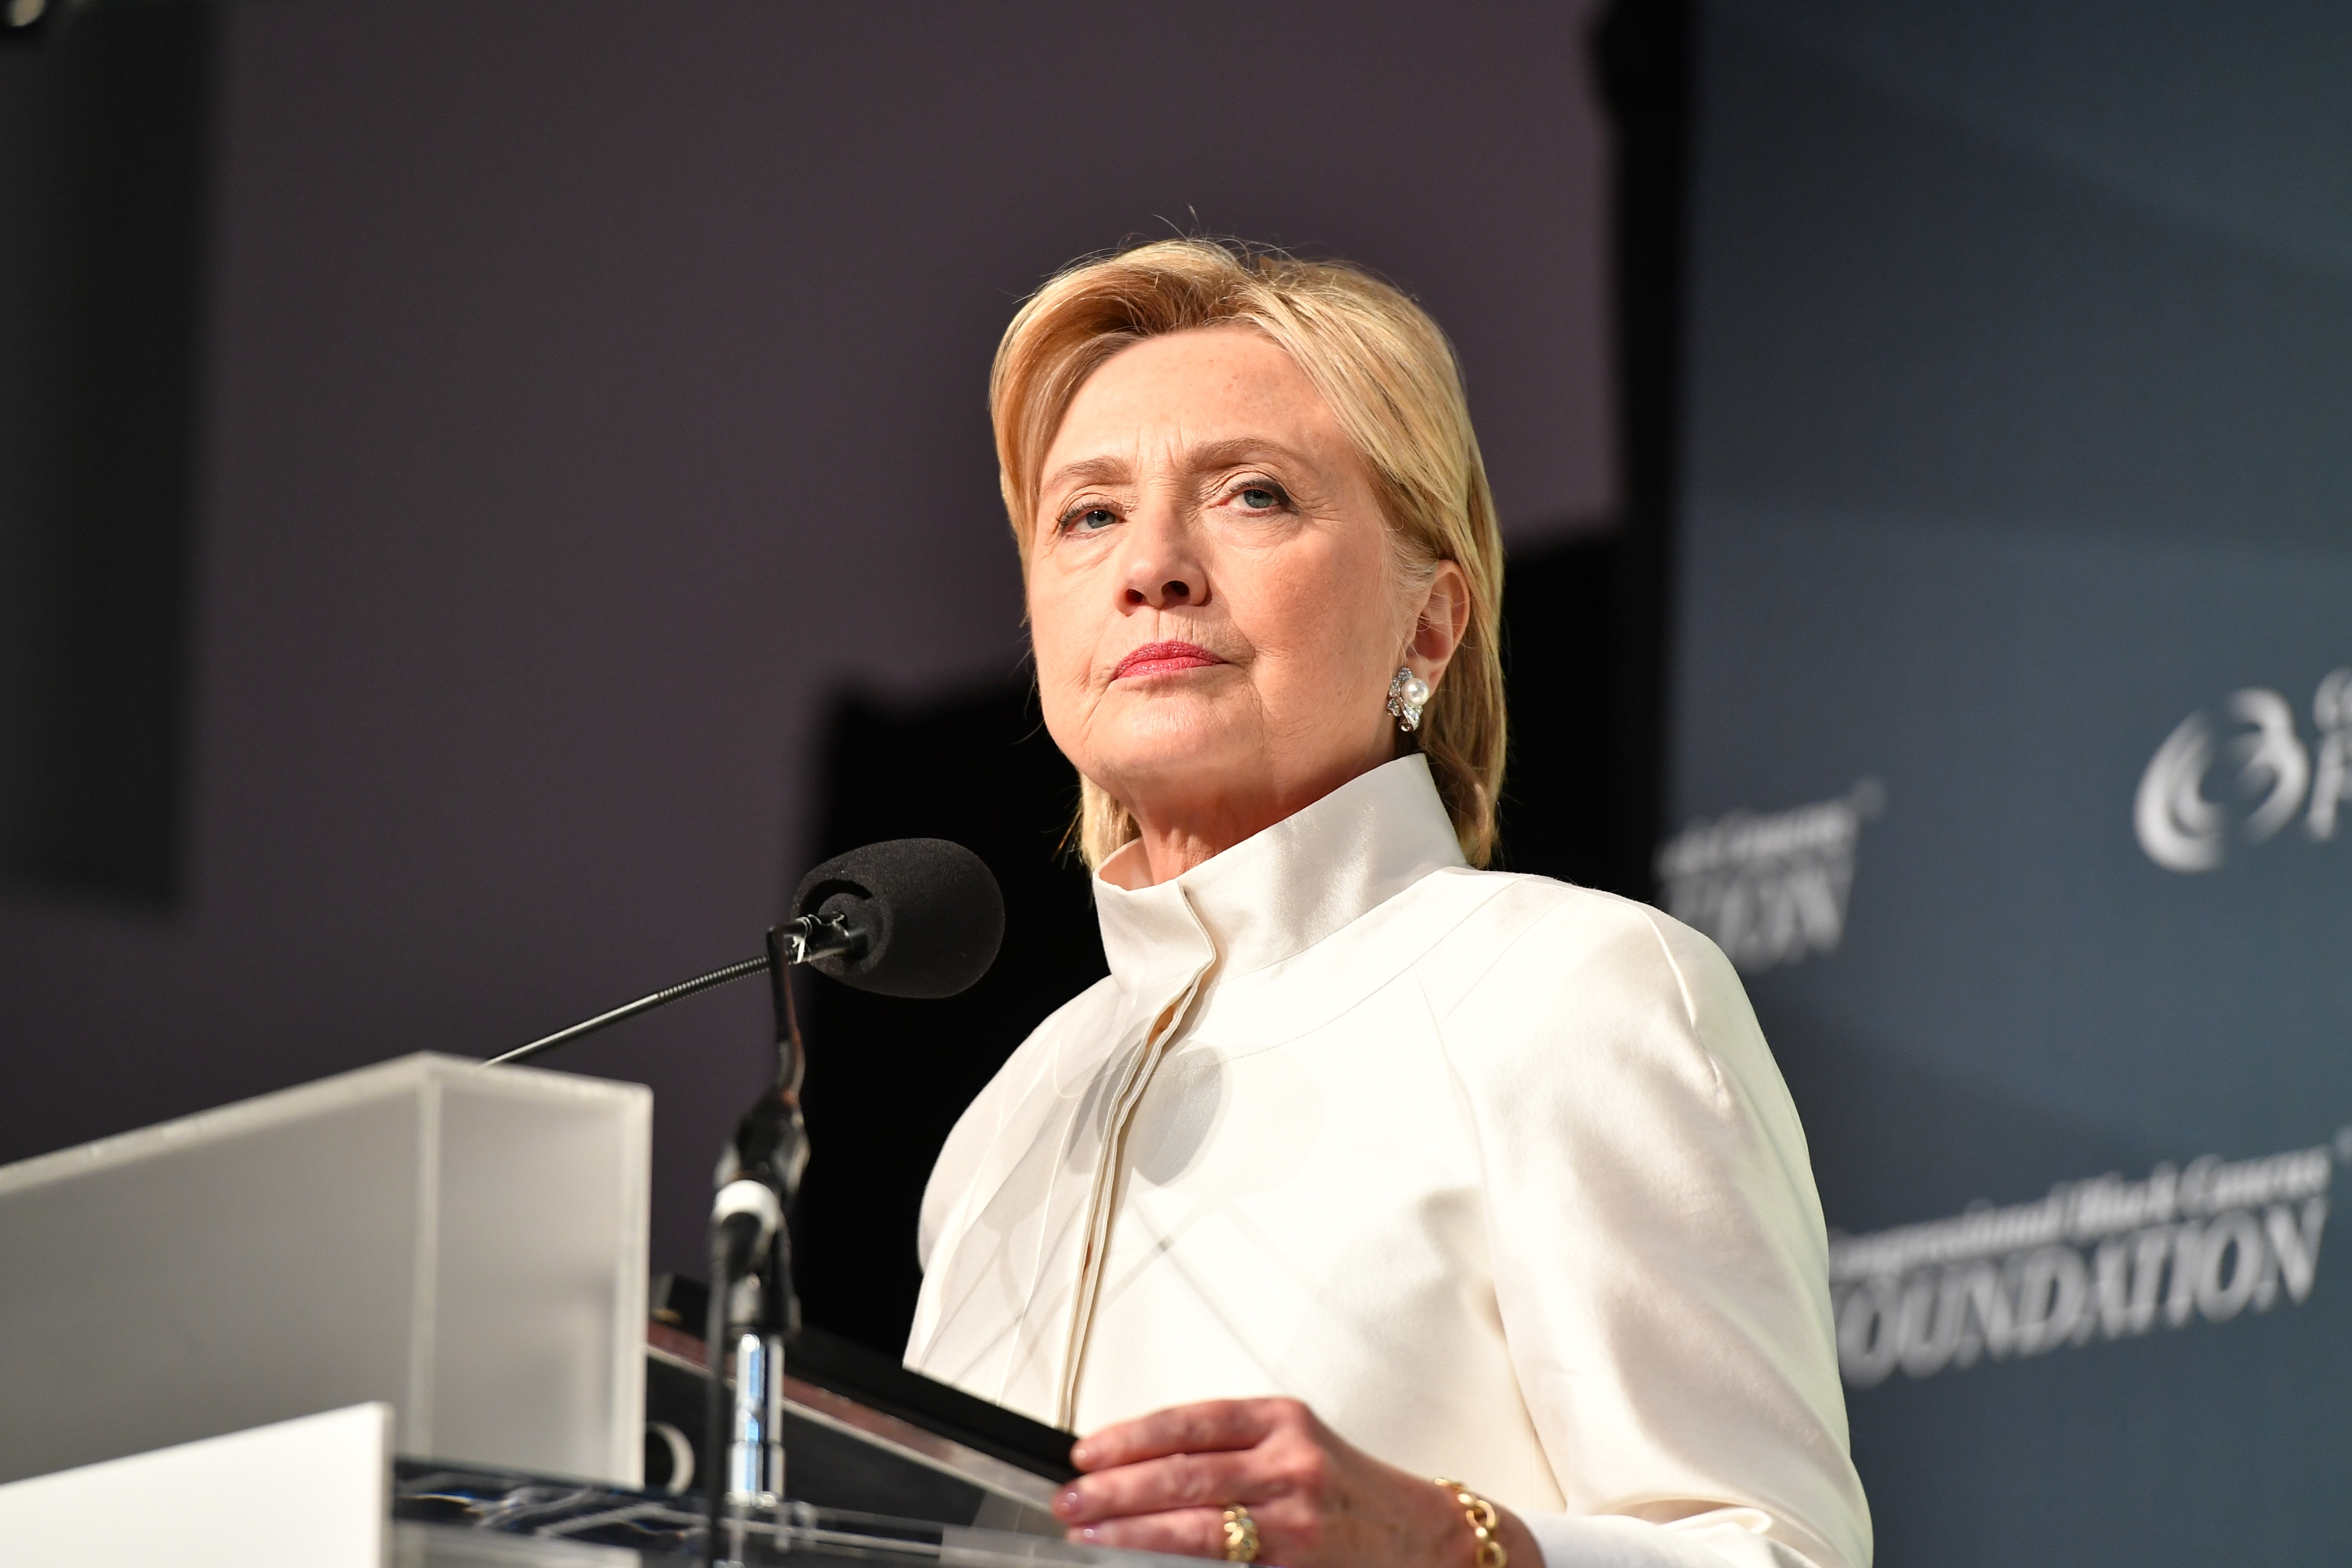 Presidential candidate Hillary Clinton speaks at the Phoenix Awards Dinner at Walter E. Washington Convention Center in Washington, D.C.,  on Sept. 17, 2016.